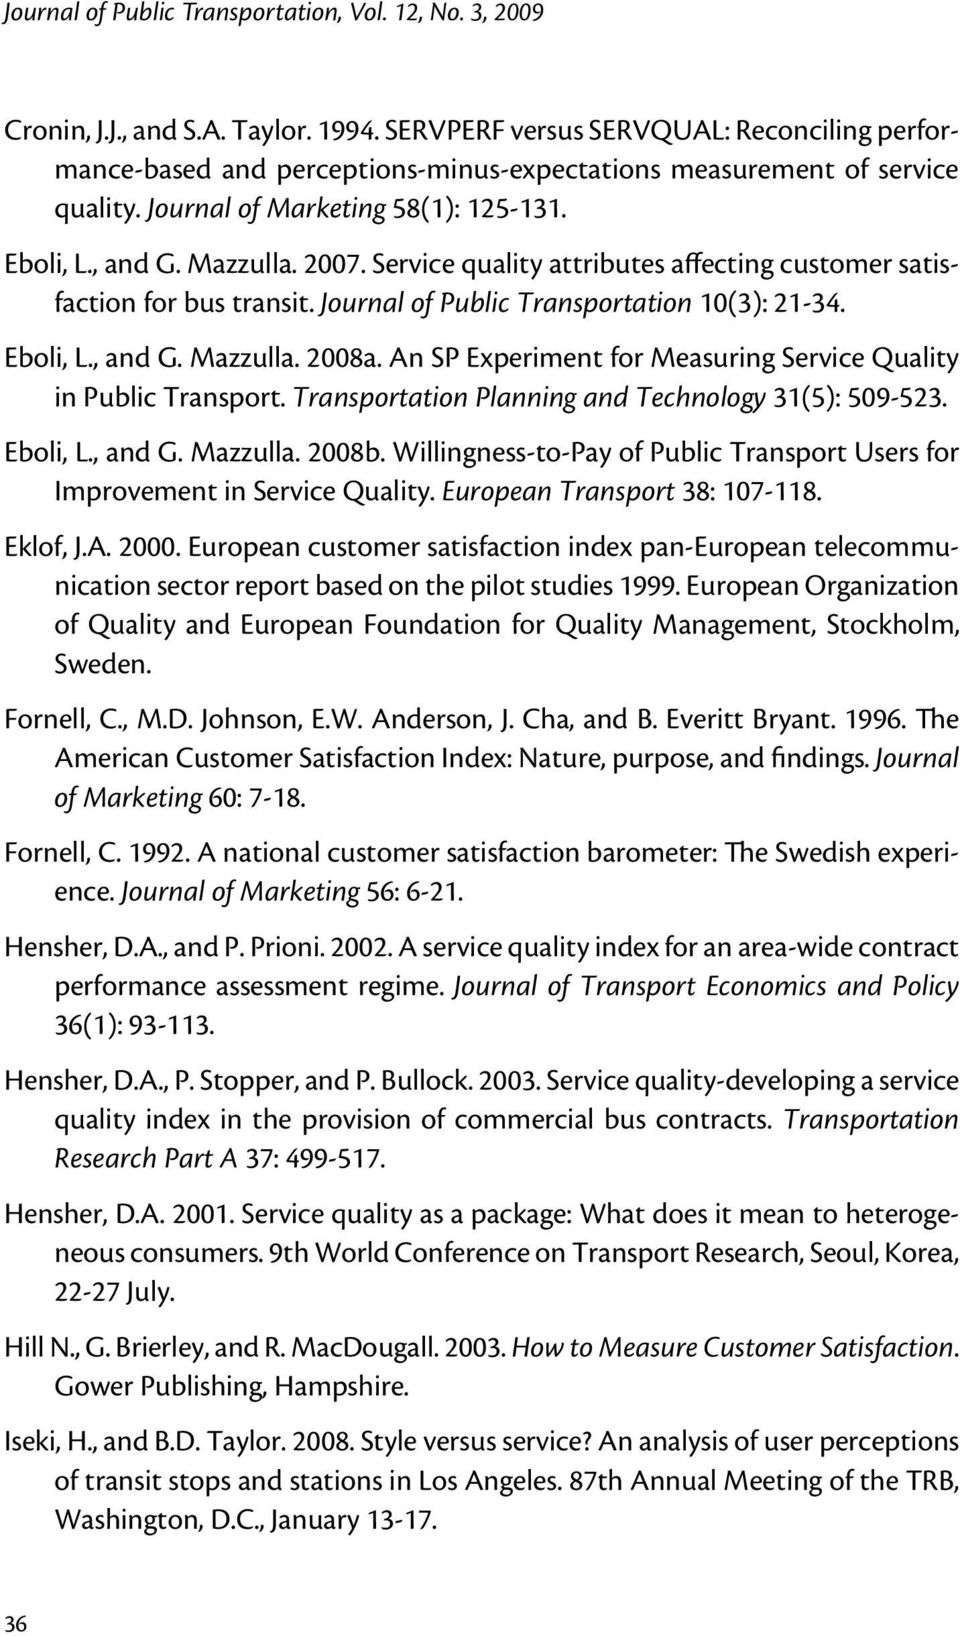 Service quality attributes affecting customer satisfaction for bus transit. Journal of Public Transportation 10(3): 21-34. Eboli, L., and G. Mazzulla. 2008a.